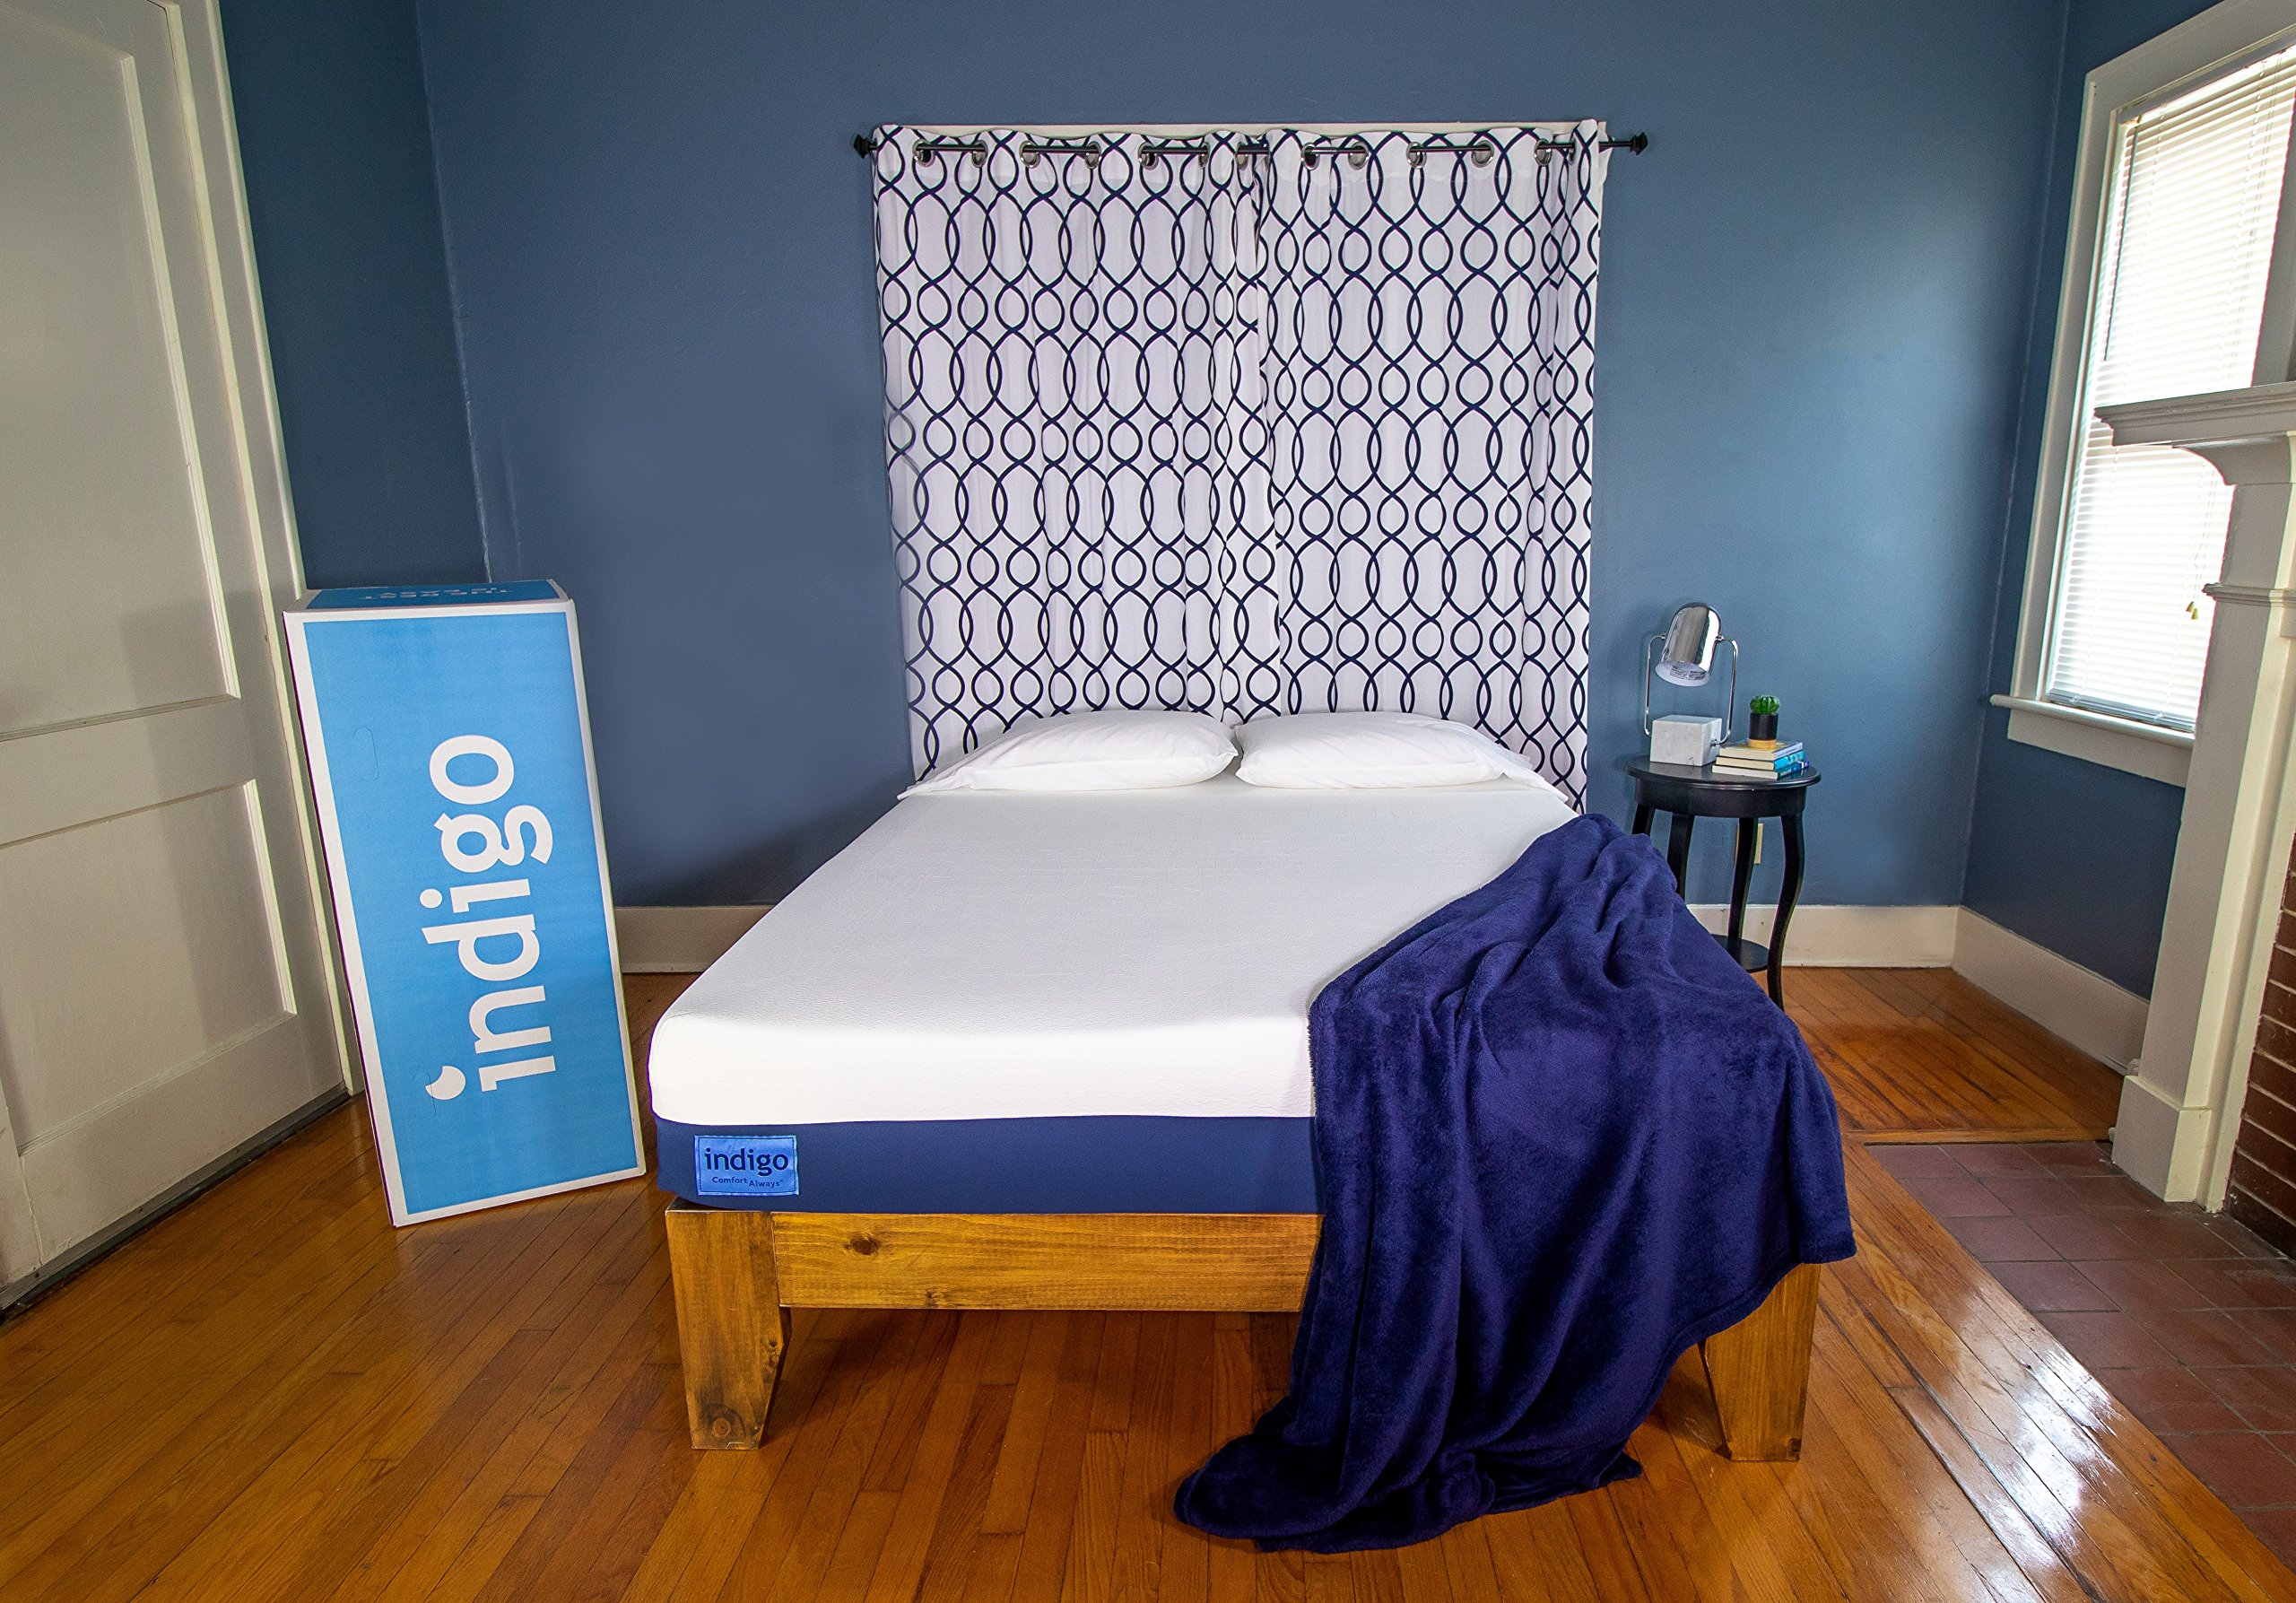 Indigo Sleep Classic Queen Mattress |Supportive Cool Gel Memory Foam |Great Sleep for Couples |Two Comfort Choices |CertiPUR-US|Non-Toxic |Patented |Clean & Safe|100 Night Trial